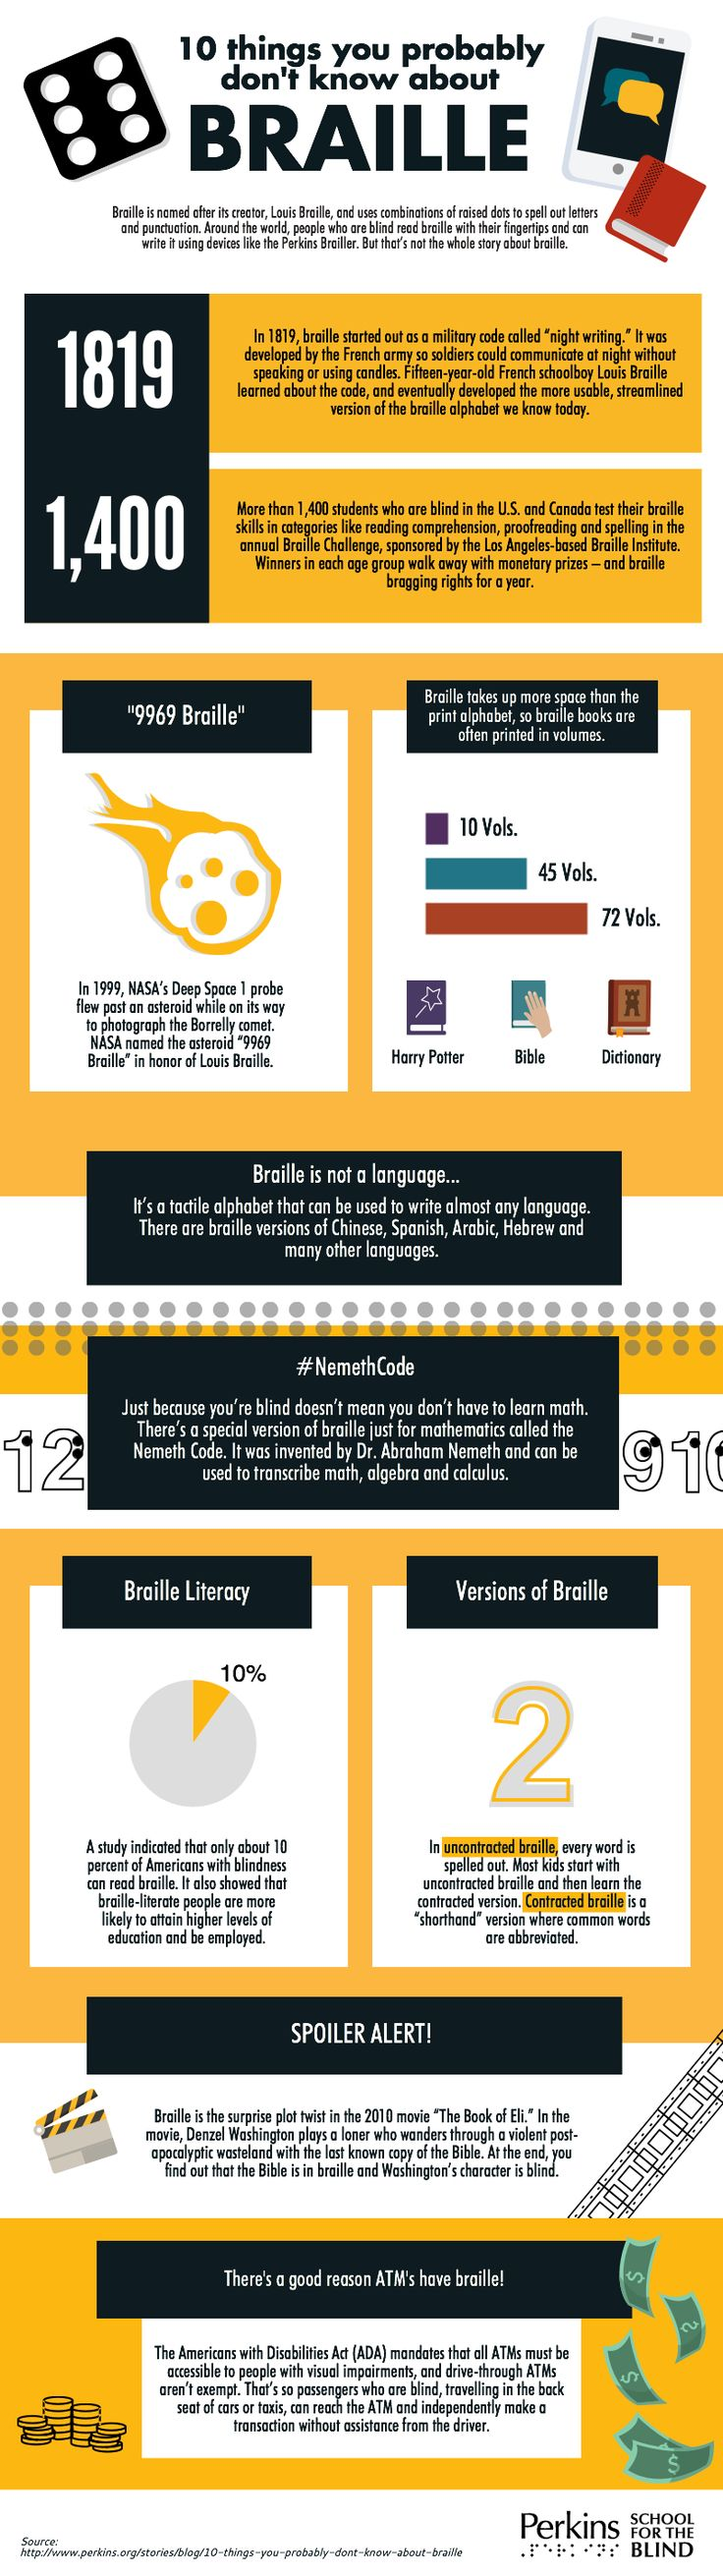 This infographic explains 10 things you probably don't know about braille! You may already know that Braille is named after its creator, Louis Braille, and uses combinations of raised dots to spell out letters and punctuation. Around the world, people who are blind read braille with their fingertips and can write it using devices like the Perkins Brailler. But that's not the whole story about braille. Read the full article on the Perkins Blog to learn more about braille today!